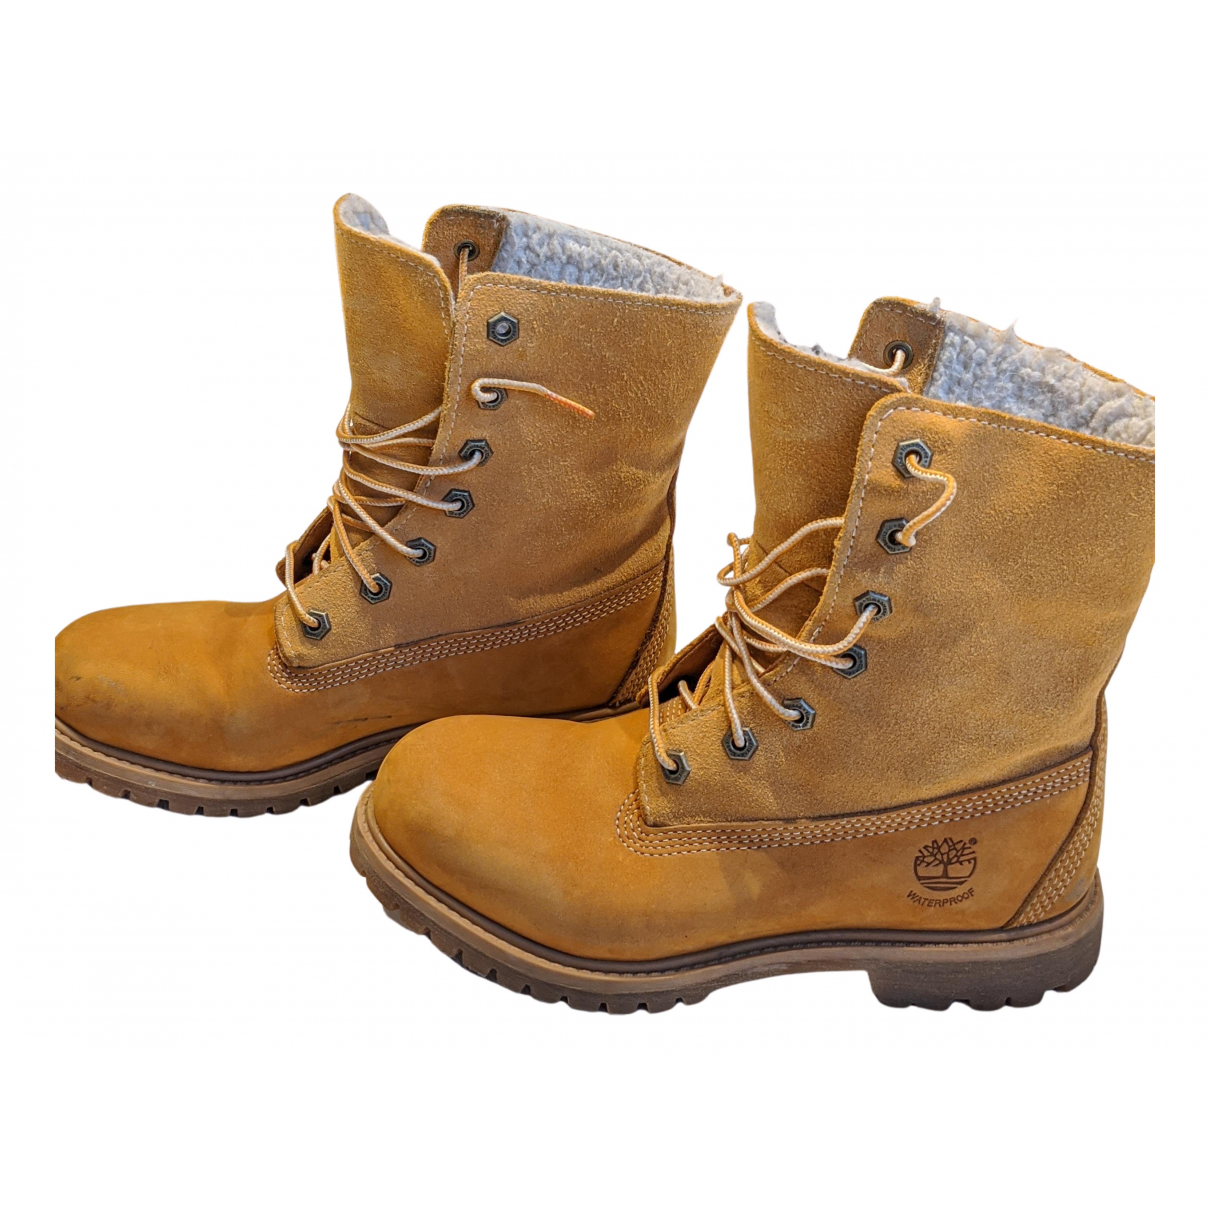 Timberland N Yellow Leather Boots for Women 37 EU